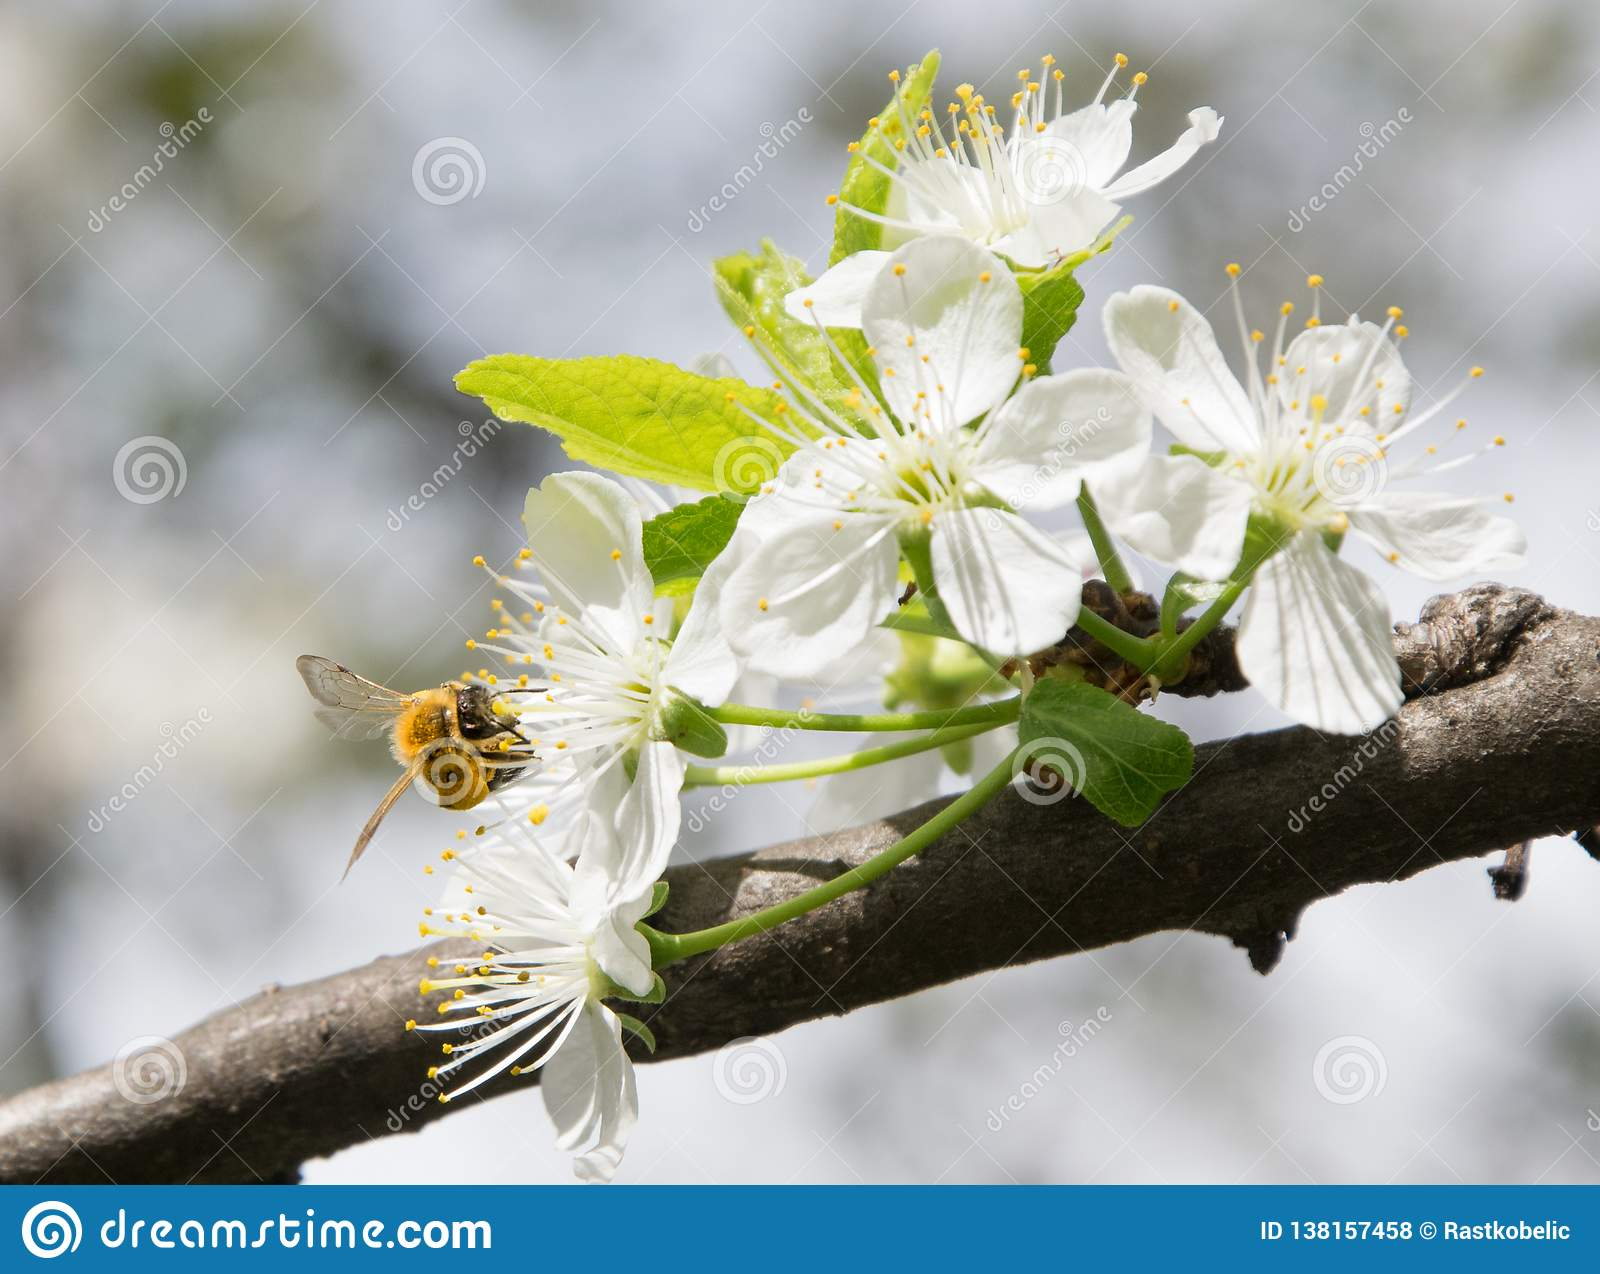 Honey Bee collecting pollen on white cherry blossom tree